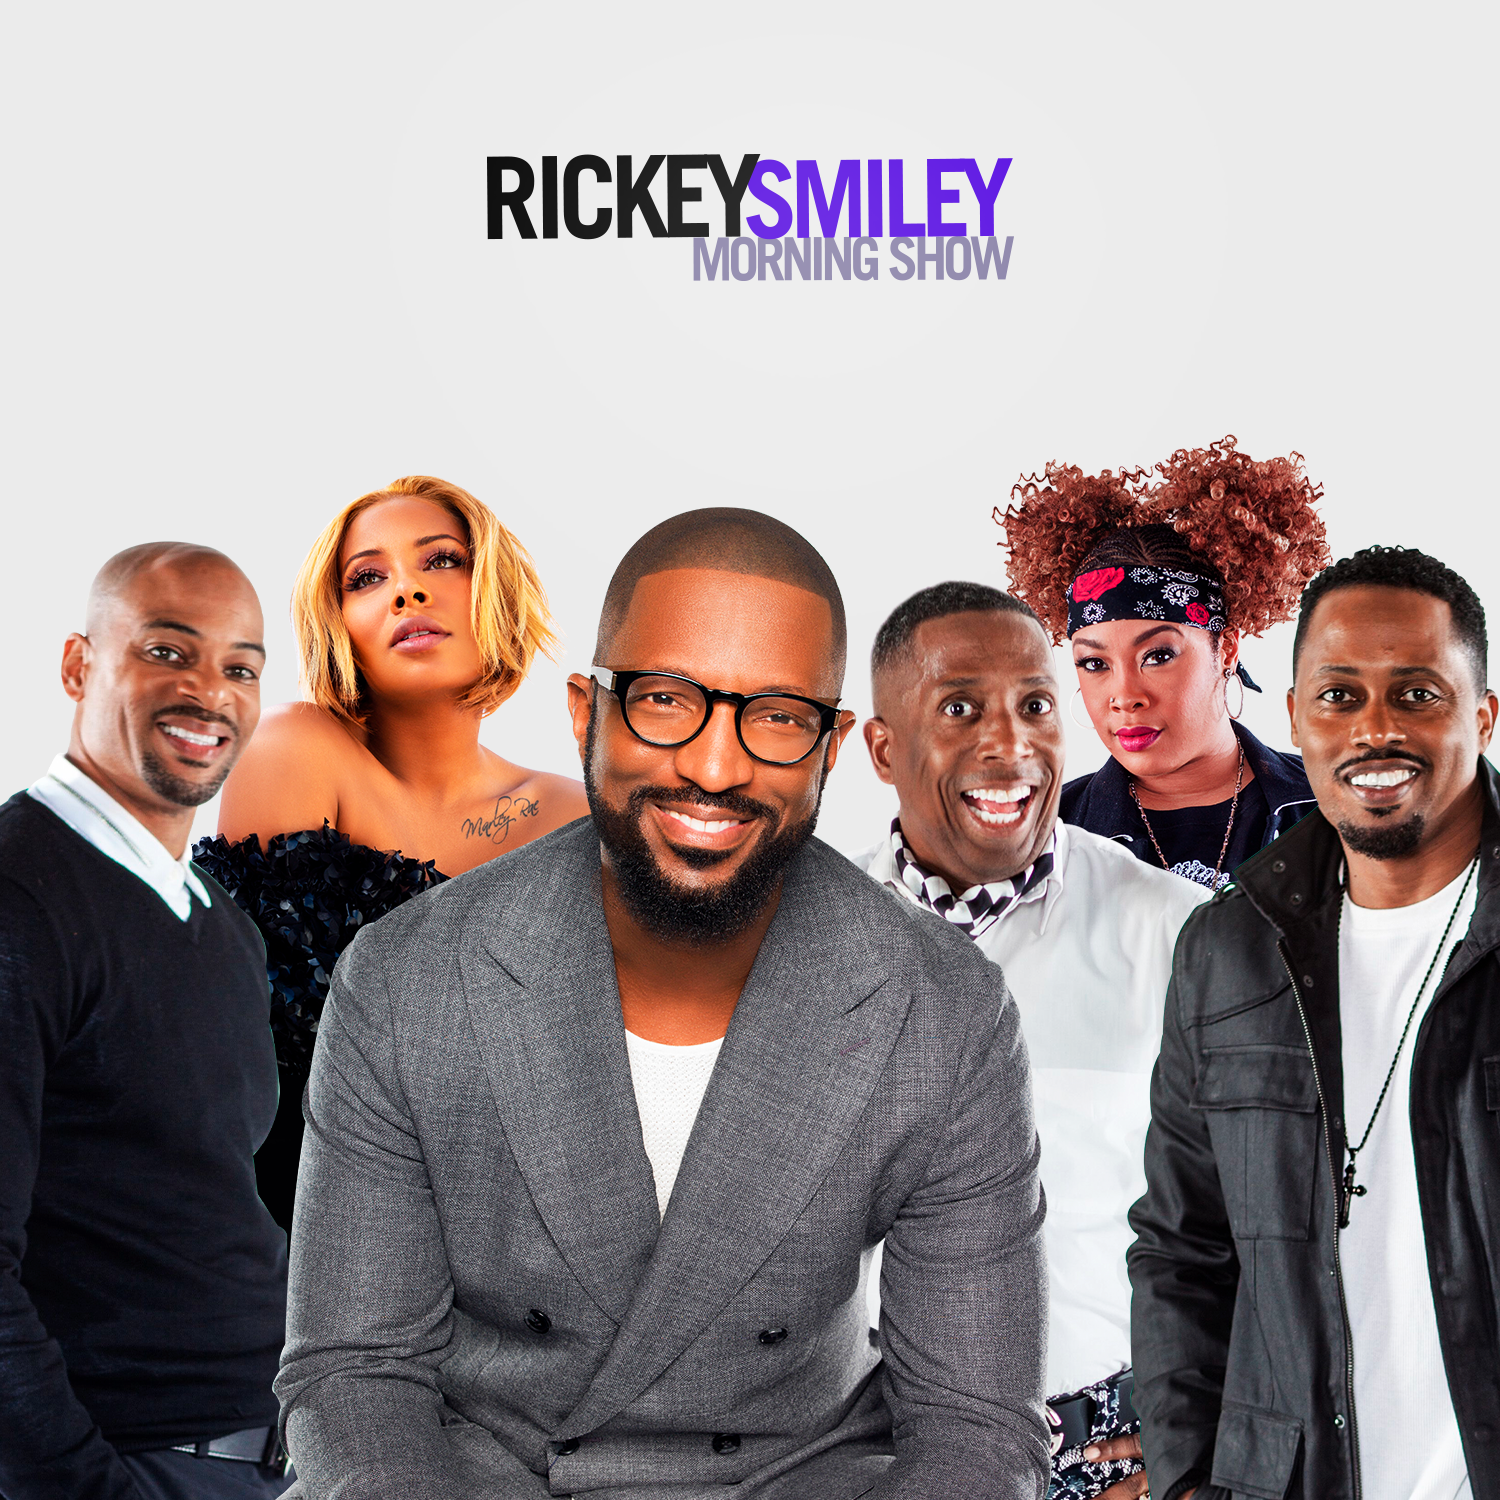 The Rickey Png - COX MEDIA GROUP TO AIR RICKEY SMILEY'S NEW URBAN AC SHOW ON ITS ...